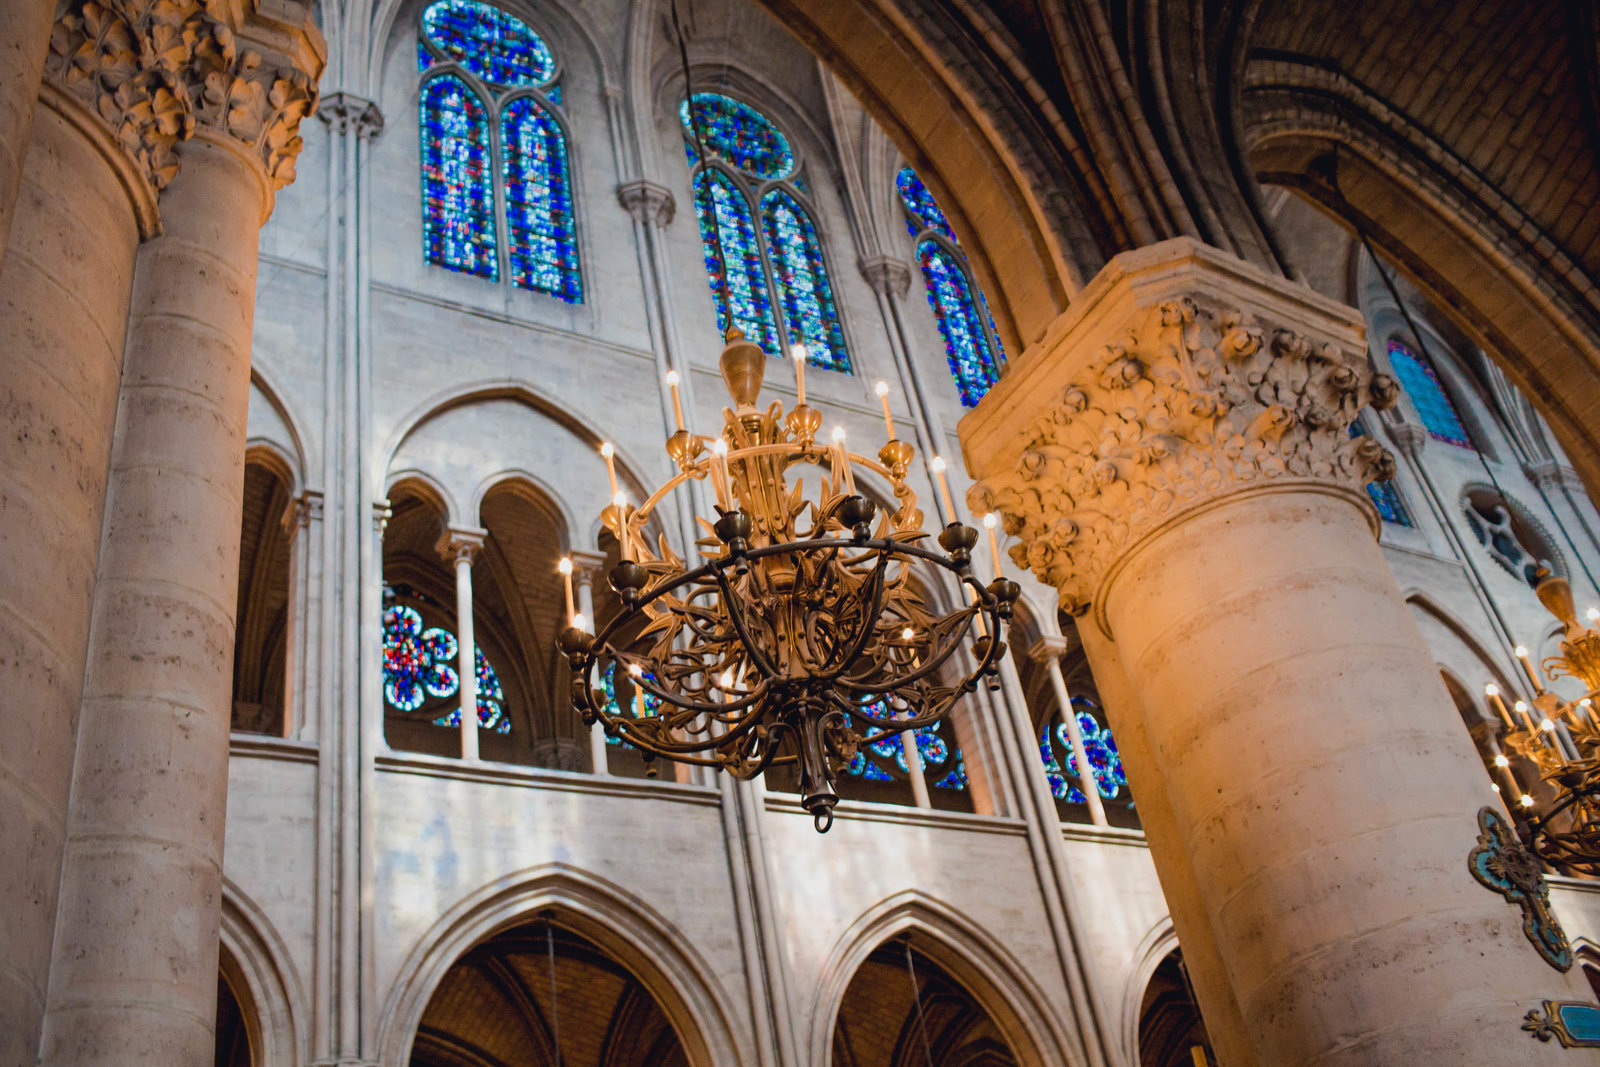 notre-dame-paris-france-travel-destination-wedding-kate-timbers-photography-1900